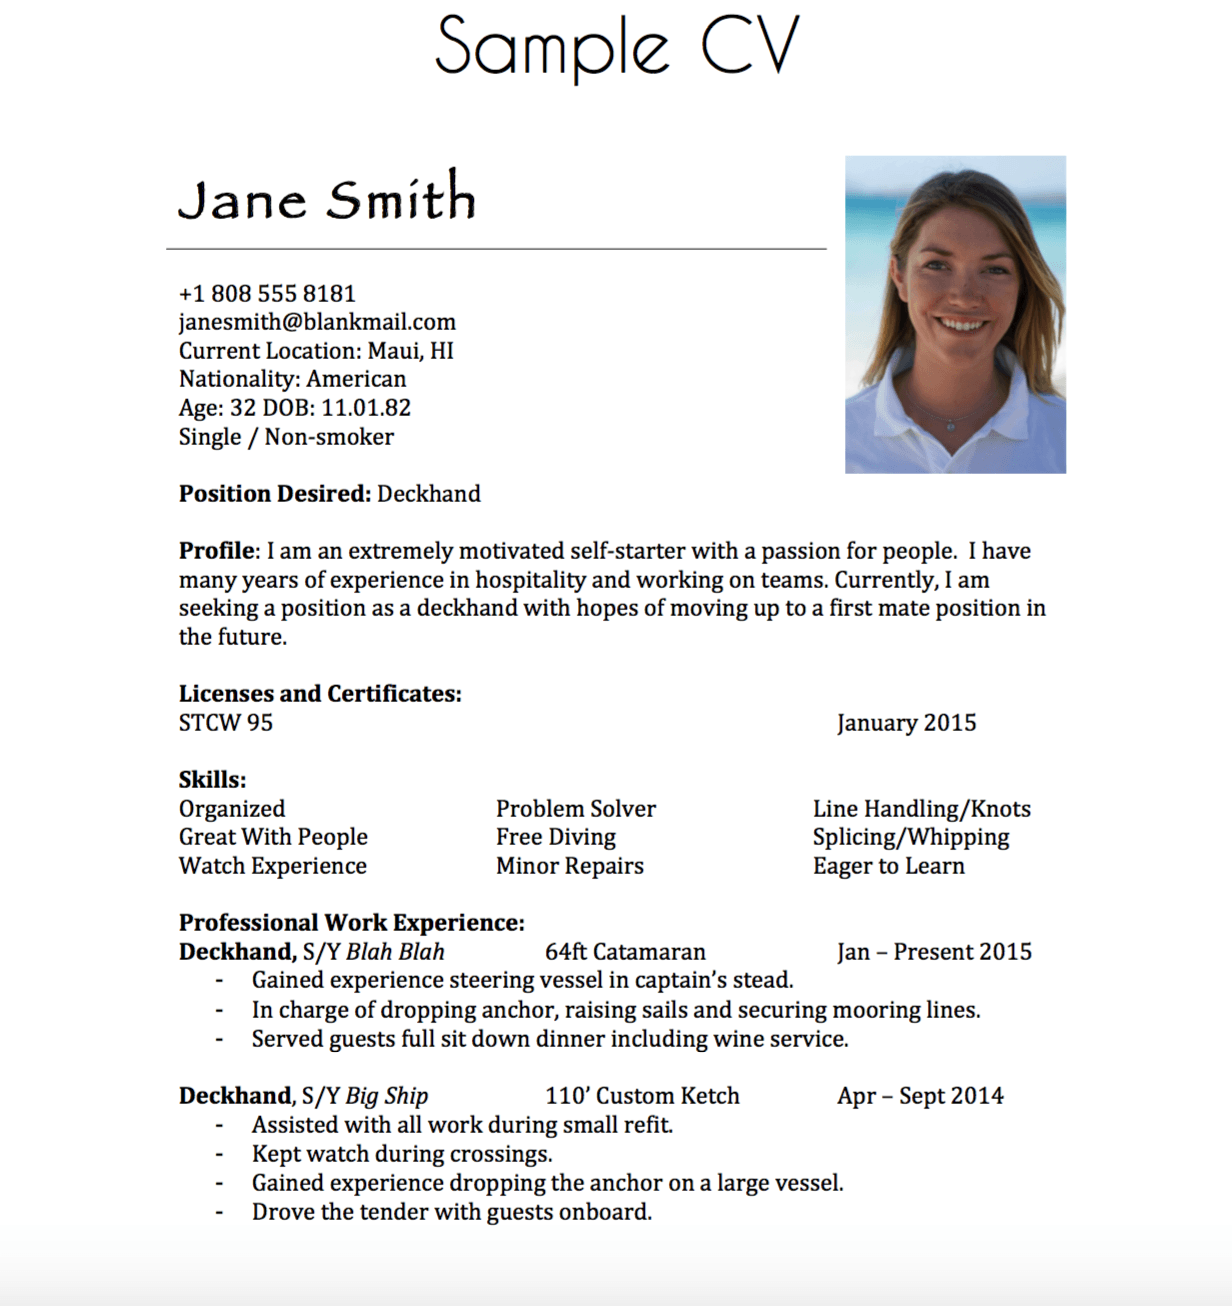 yacht resume template  Building a Yachting Resume - Moxie & Epoxy - yacht resume template